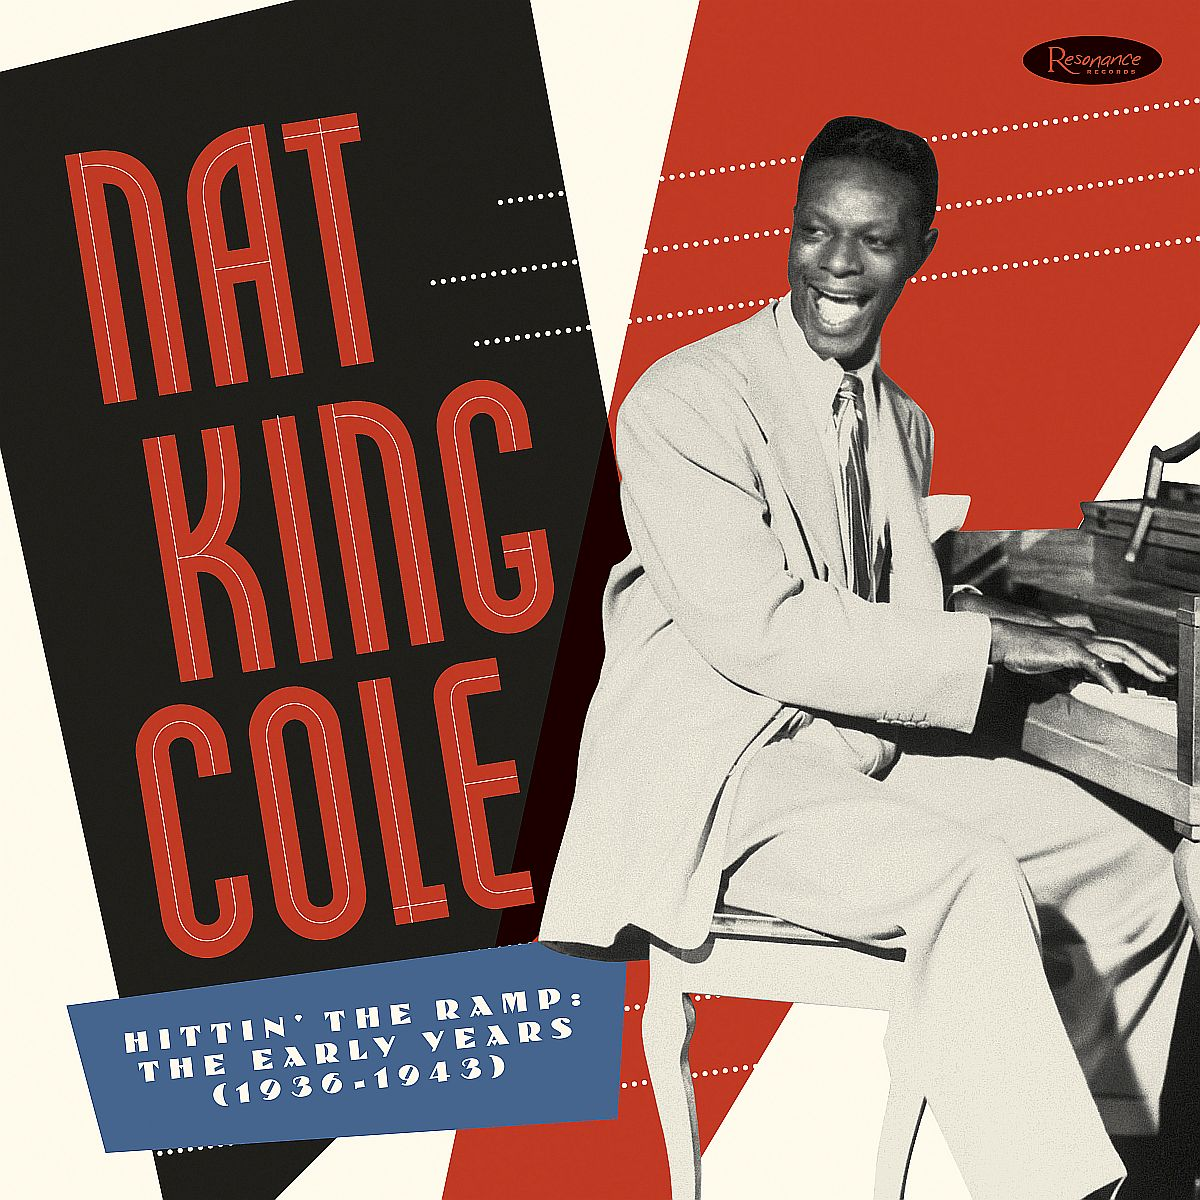 Nat King Cole - Hittin' The Ramp- The Early Years (193 - Nat King Cole - Hittin' the Ramp - Cover Art1200pix